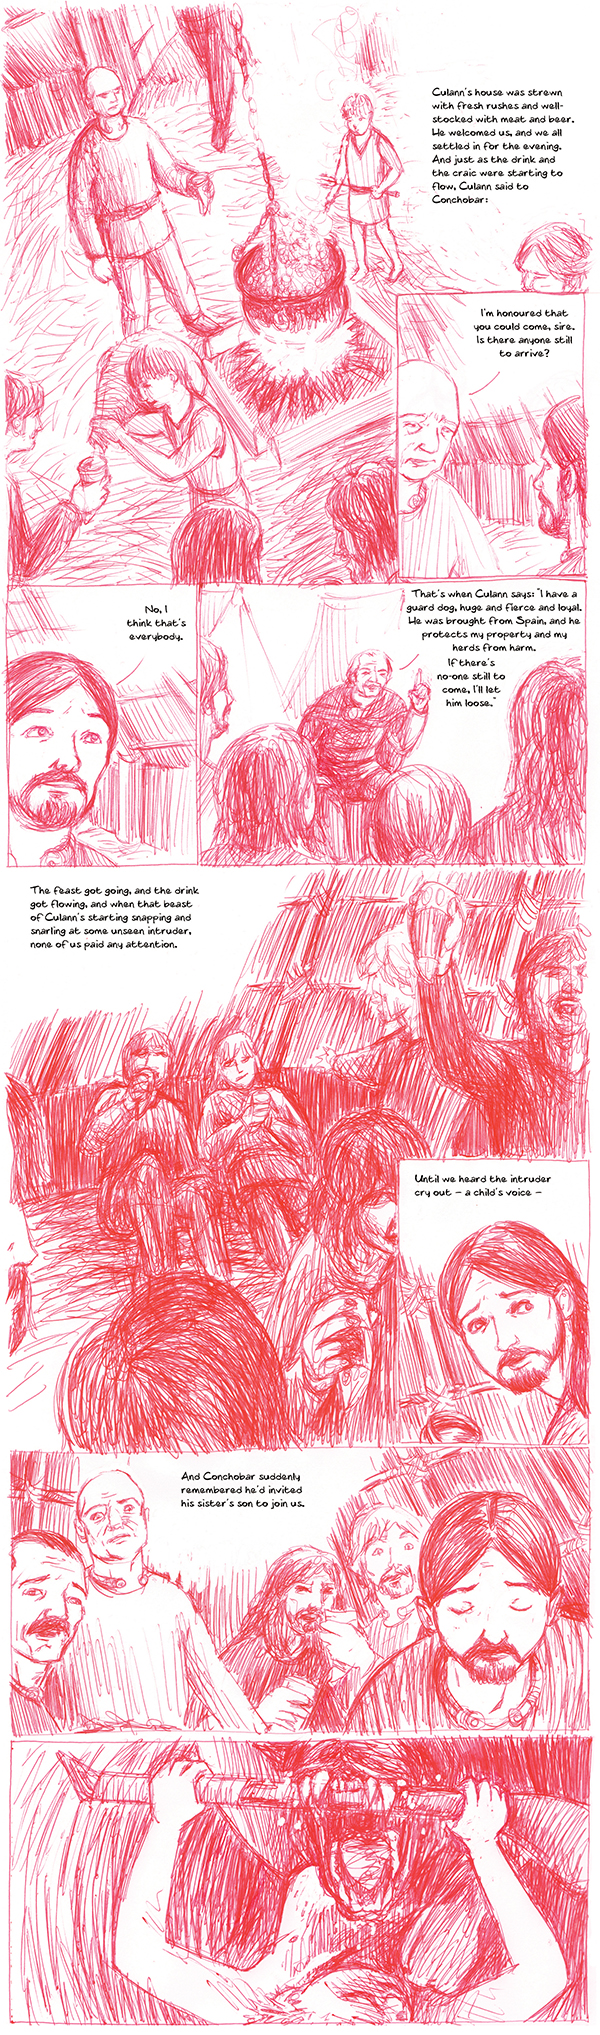 The Cattle Raid of Cooley issue 5 preview